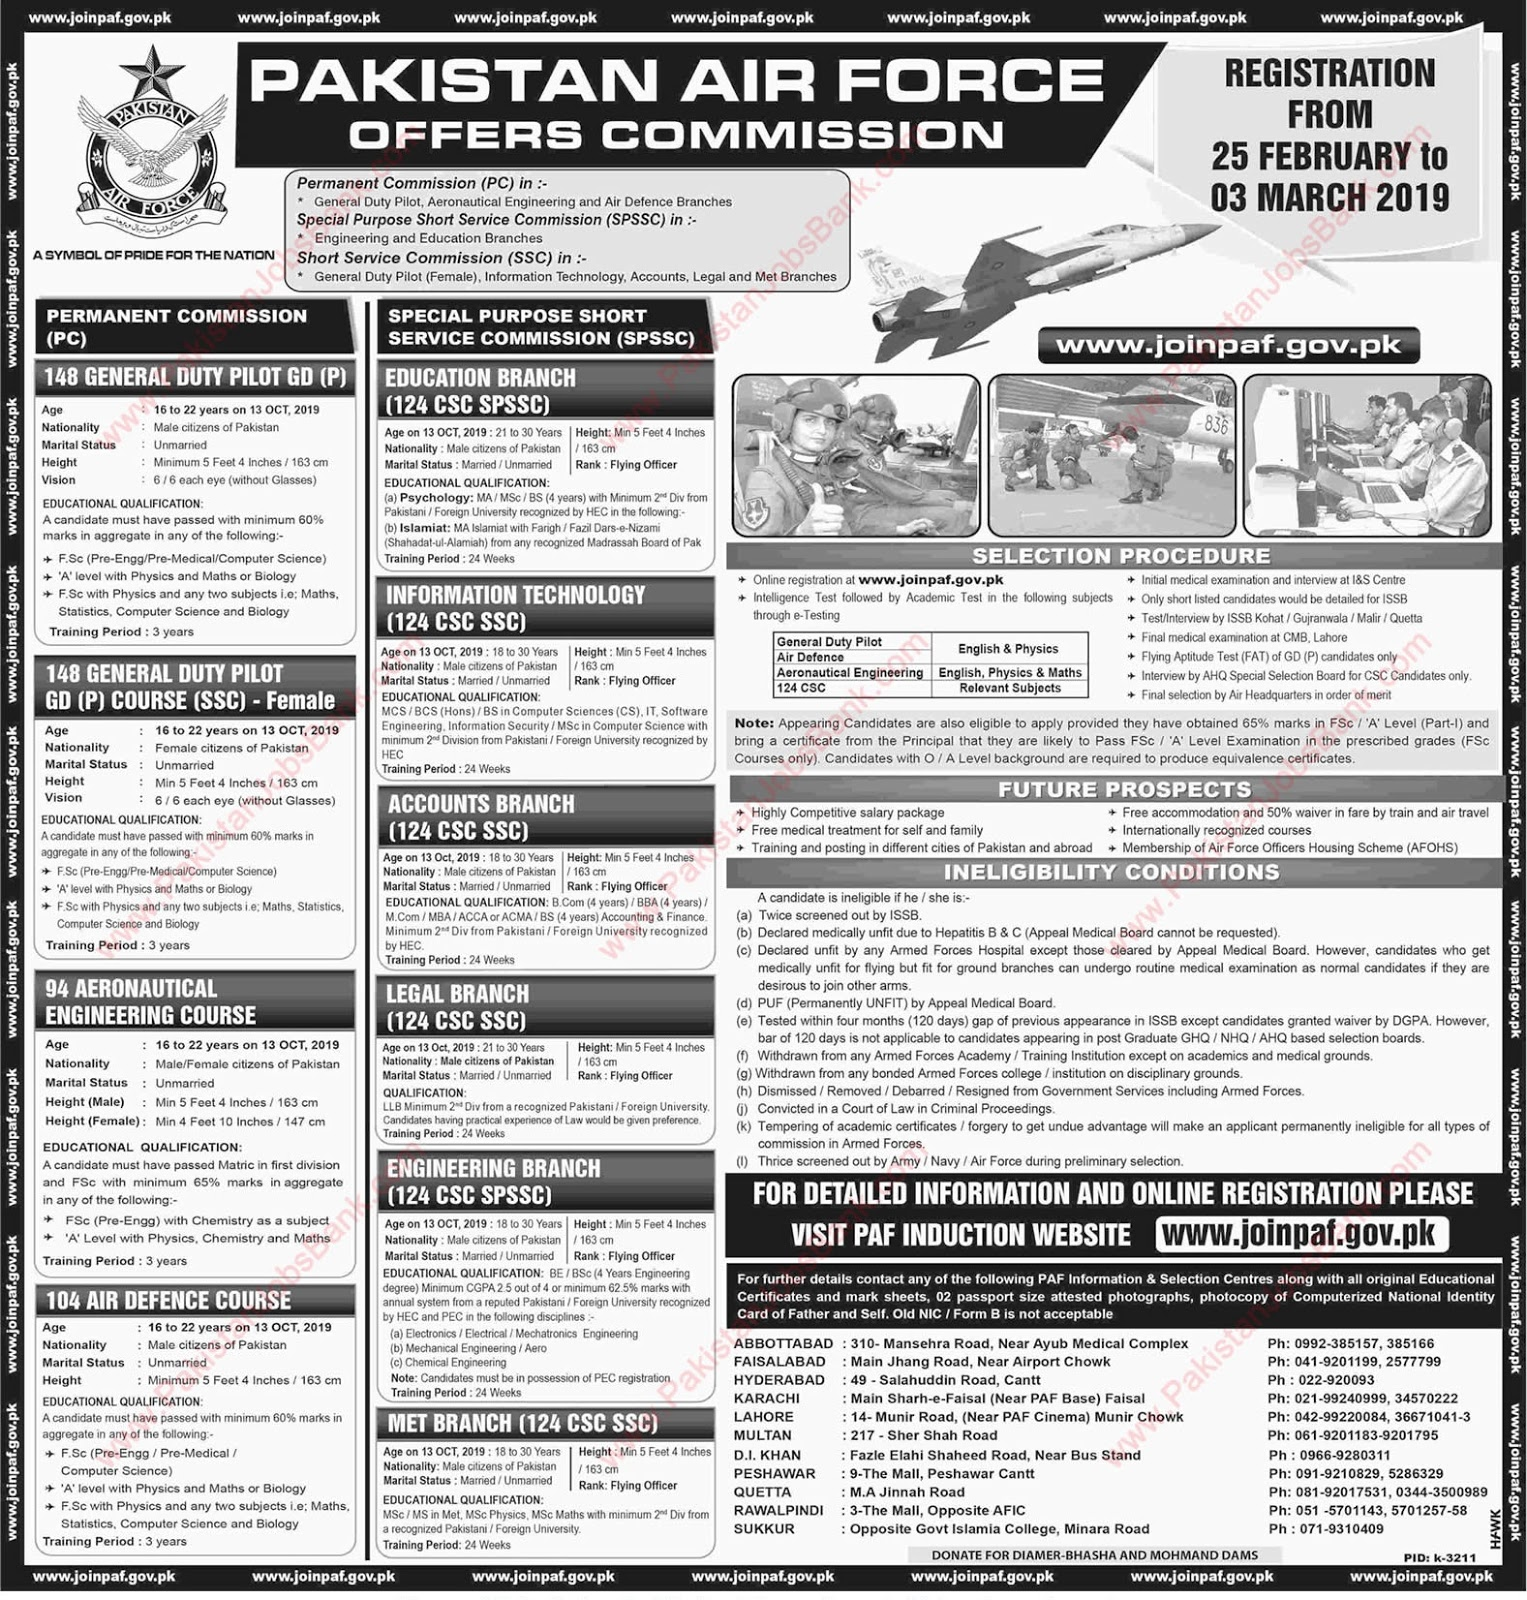 PAF Commissioned Officer Jobs Feb 2019  Pakistan Air-Force Latest Total Vacancies 800